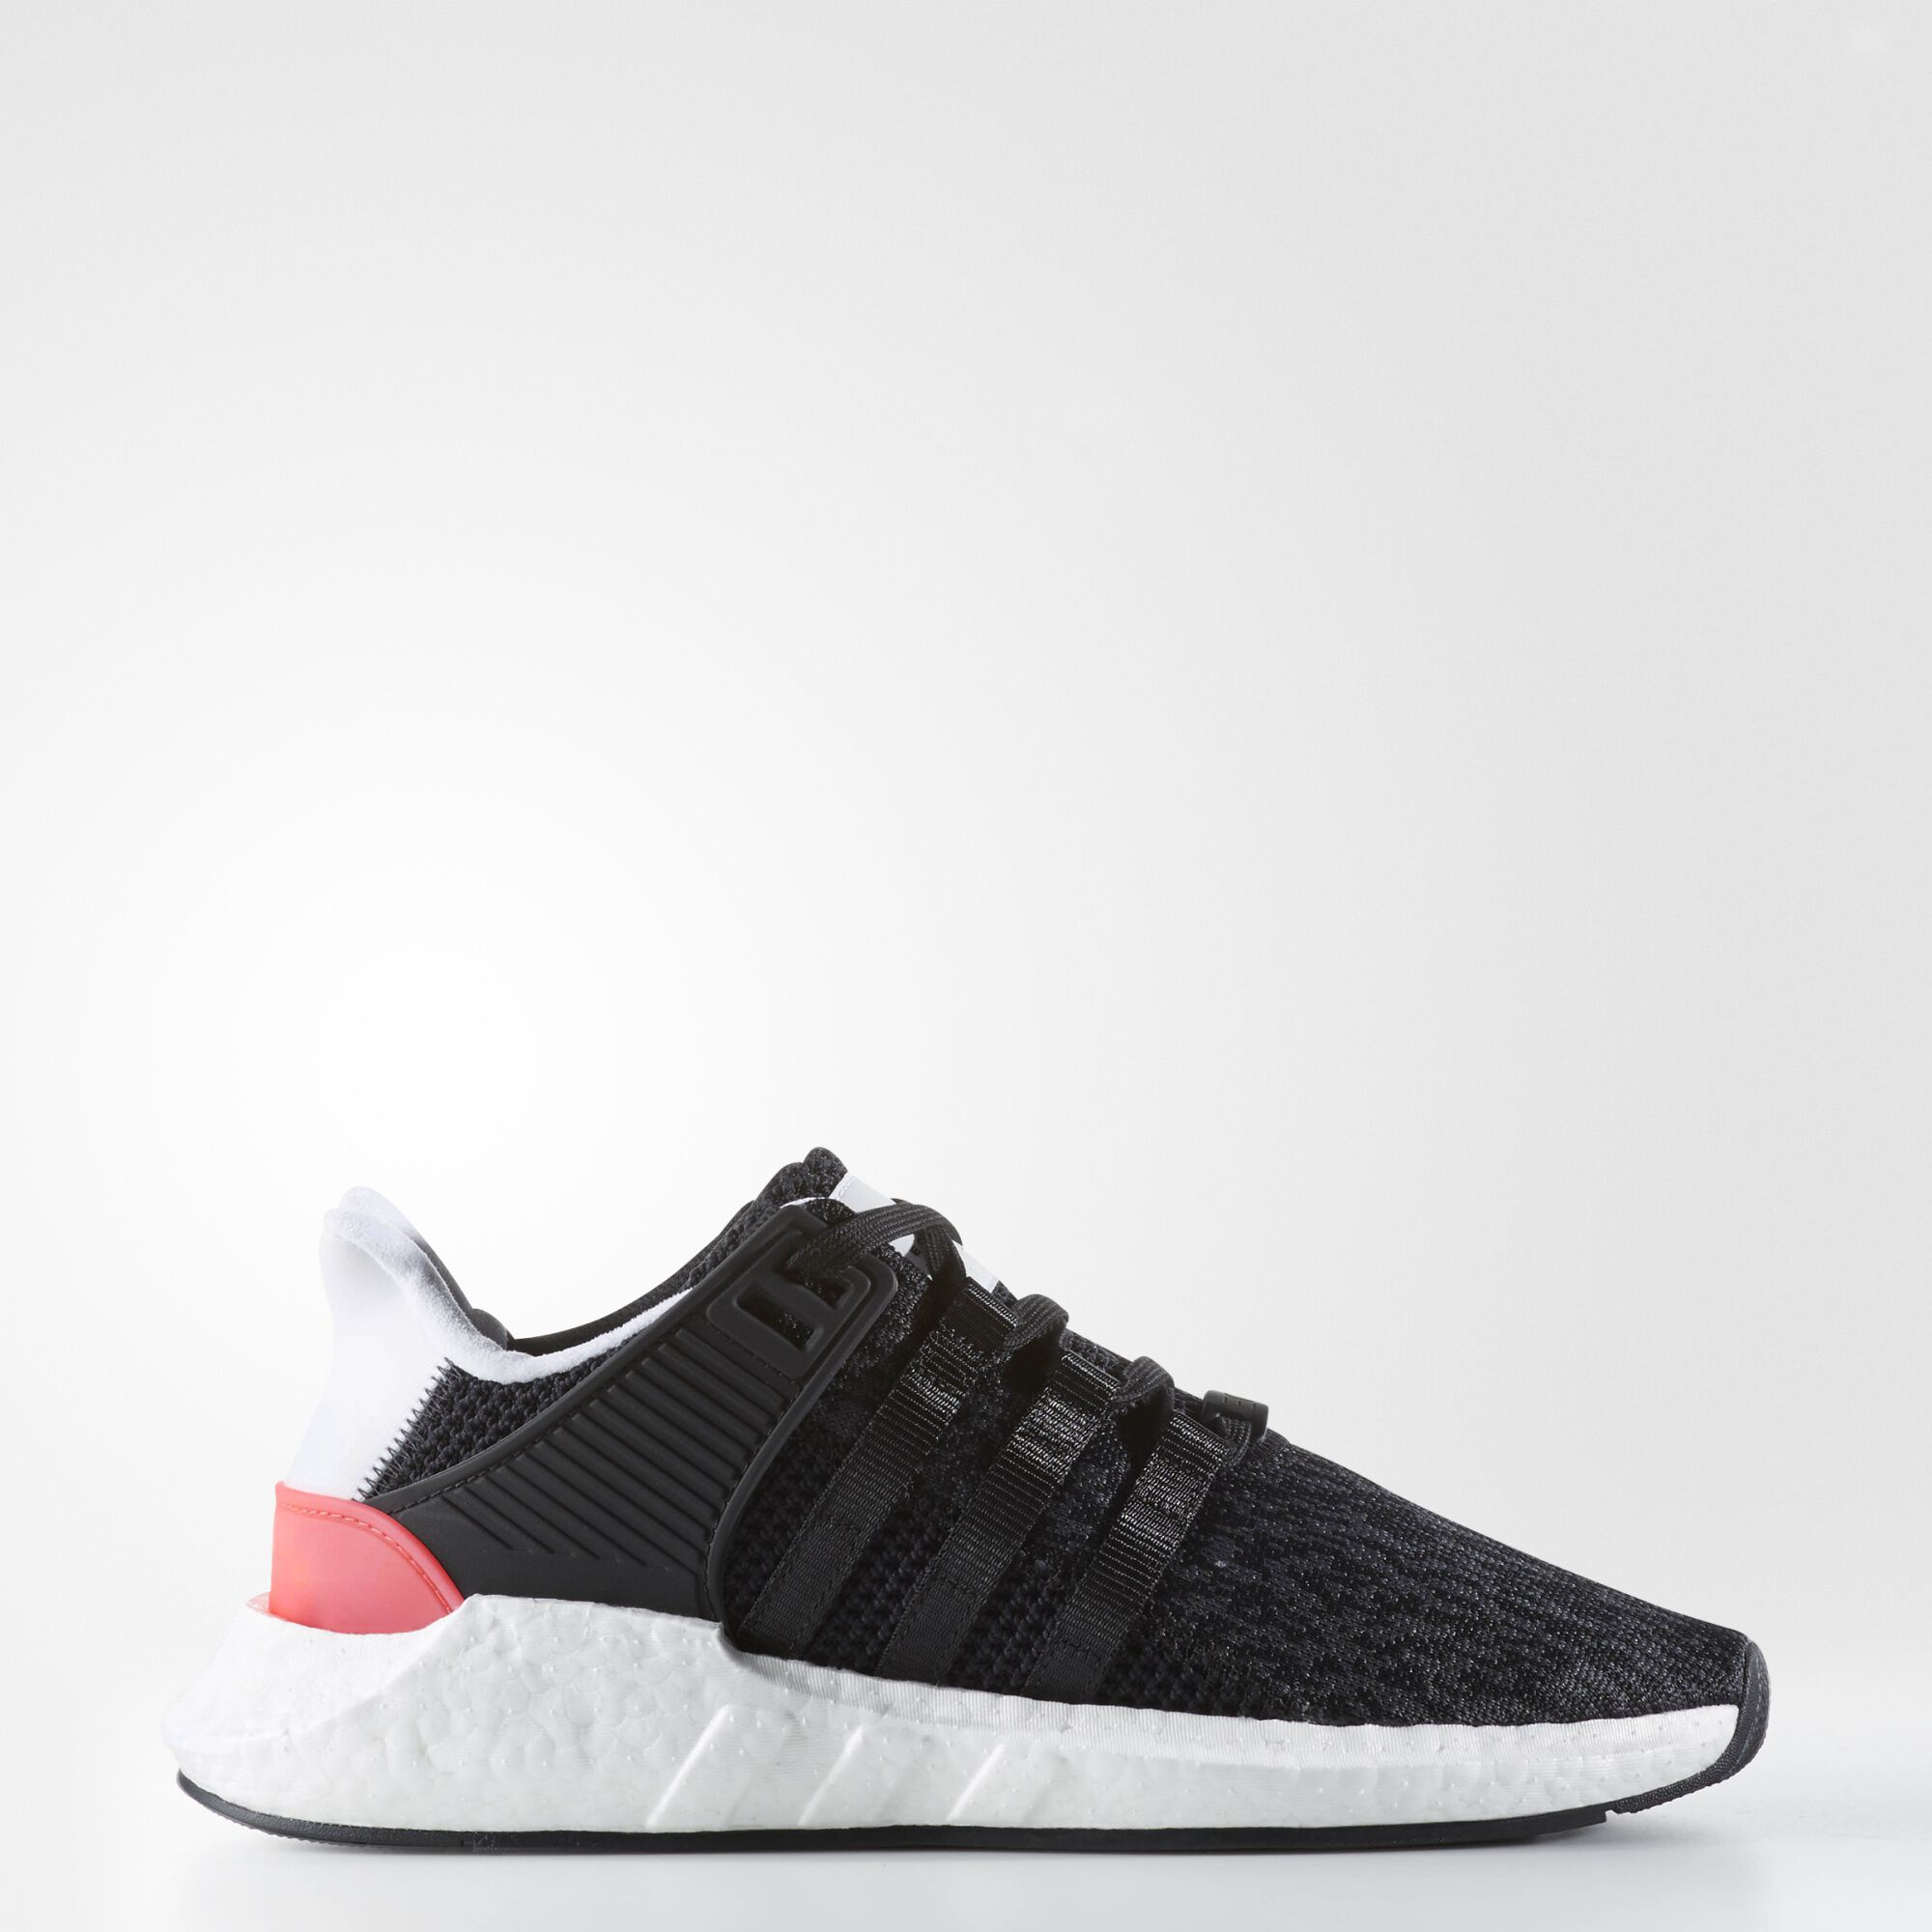 Adidas Eqt Boost Retail Price